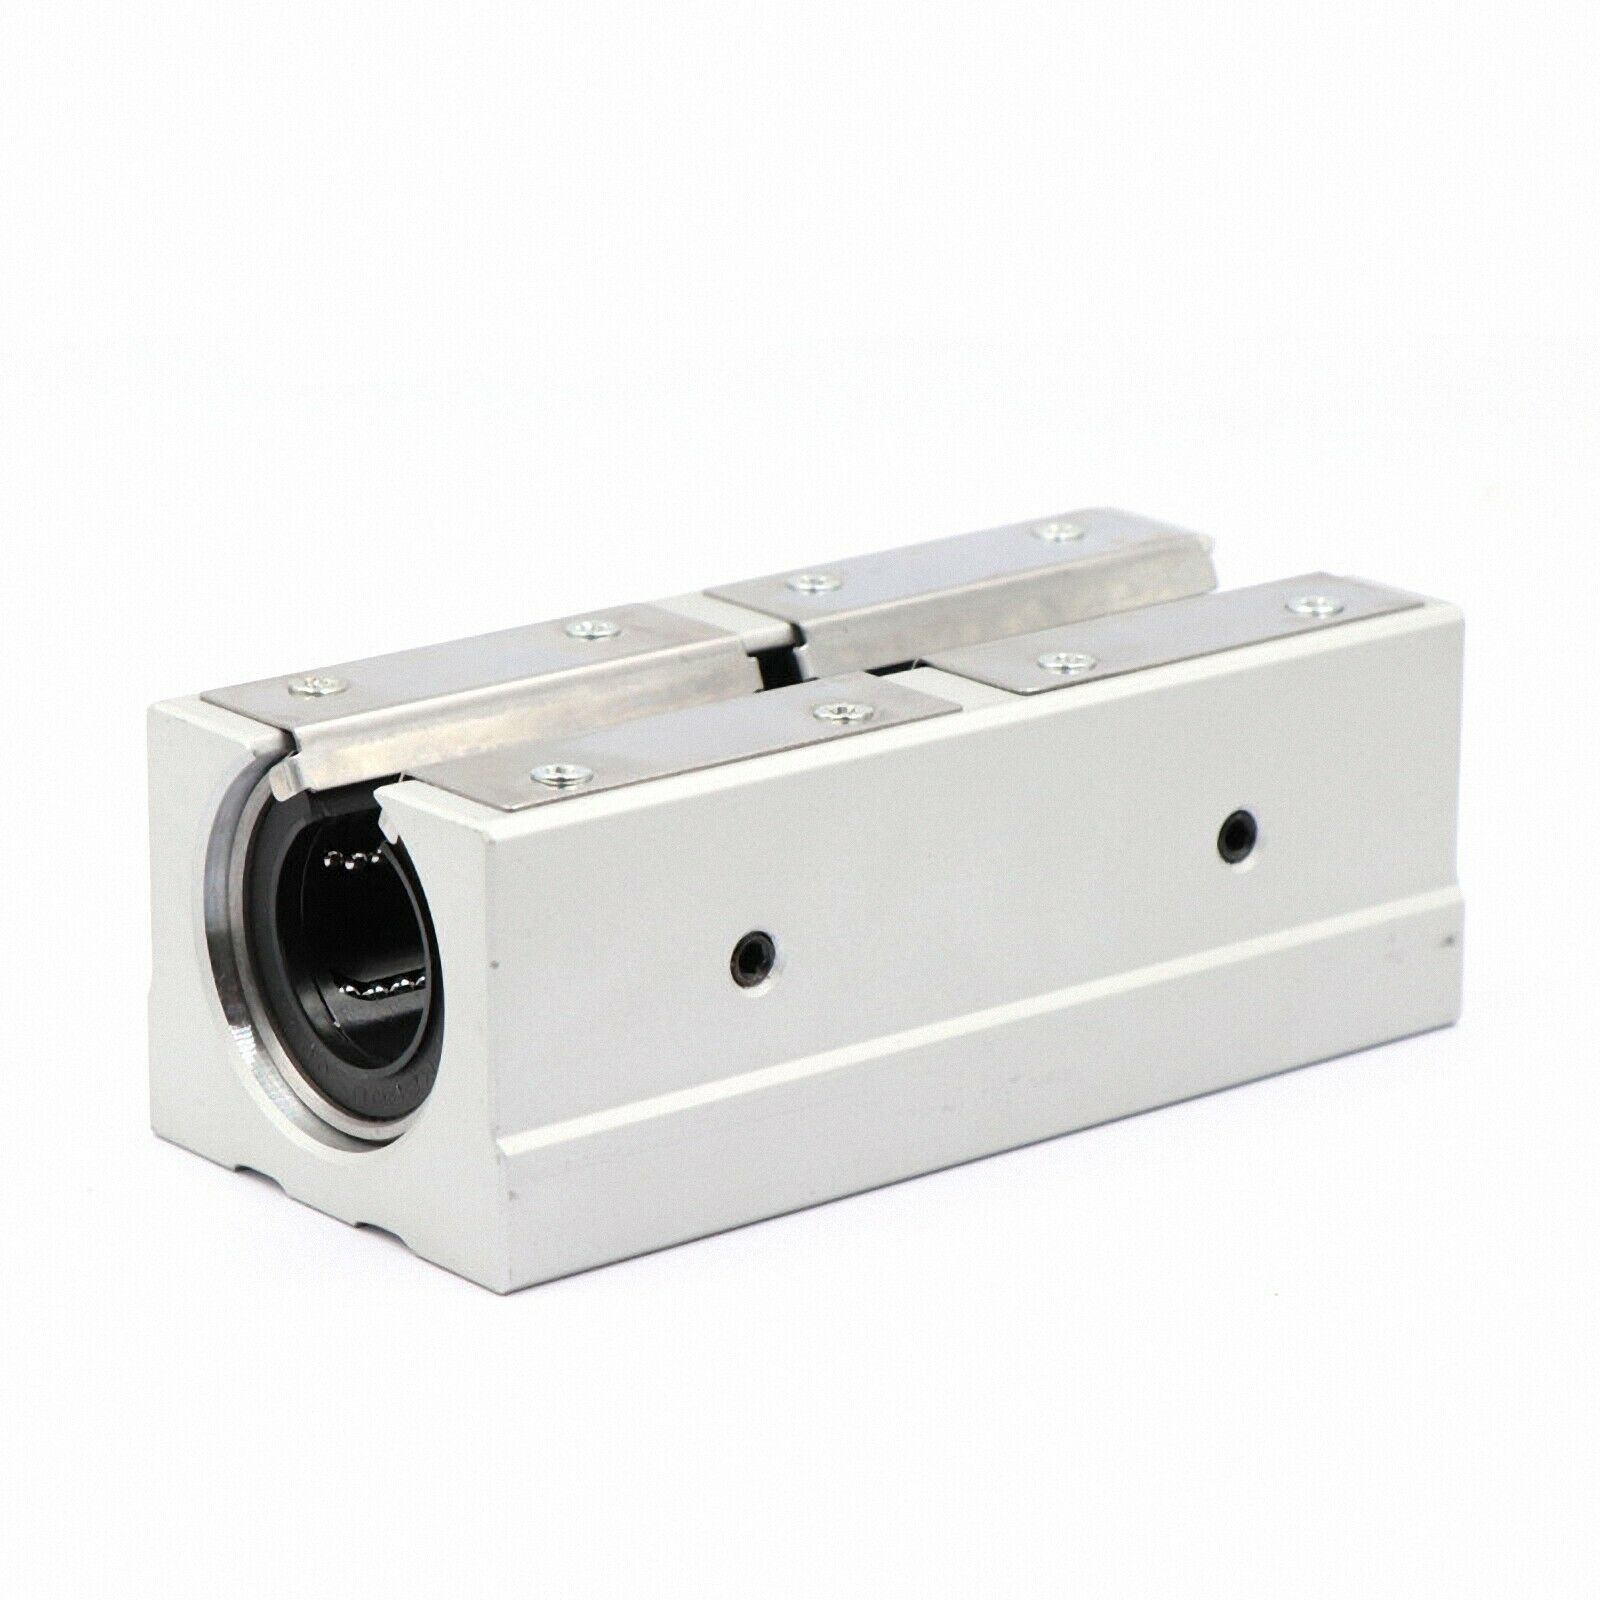 1pcs <font><b>linear</b></font> slide bearing SBR25LUU long type housing pillow block match use <font><b>SBR25</b></font> 25mm <font><b>linear</b></font> guide <font><b>rail</b></font> image